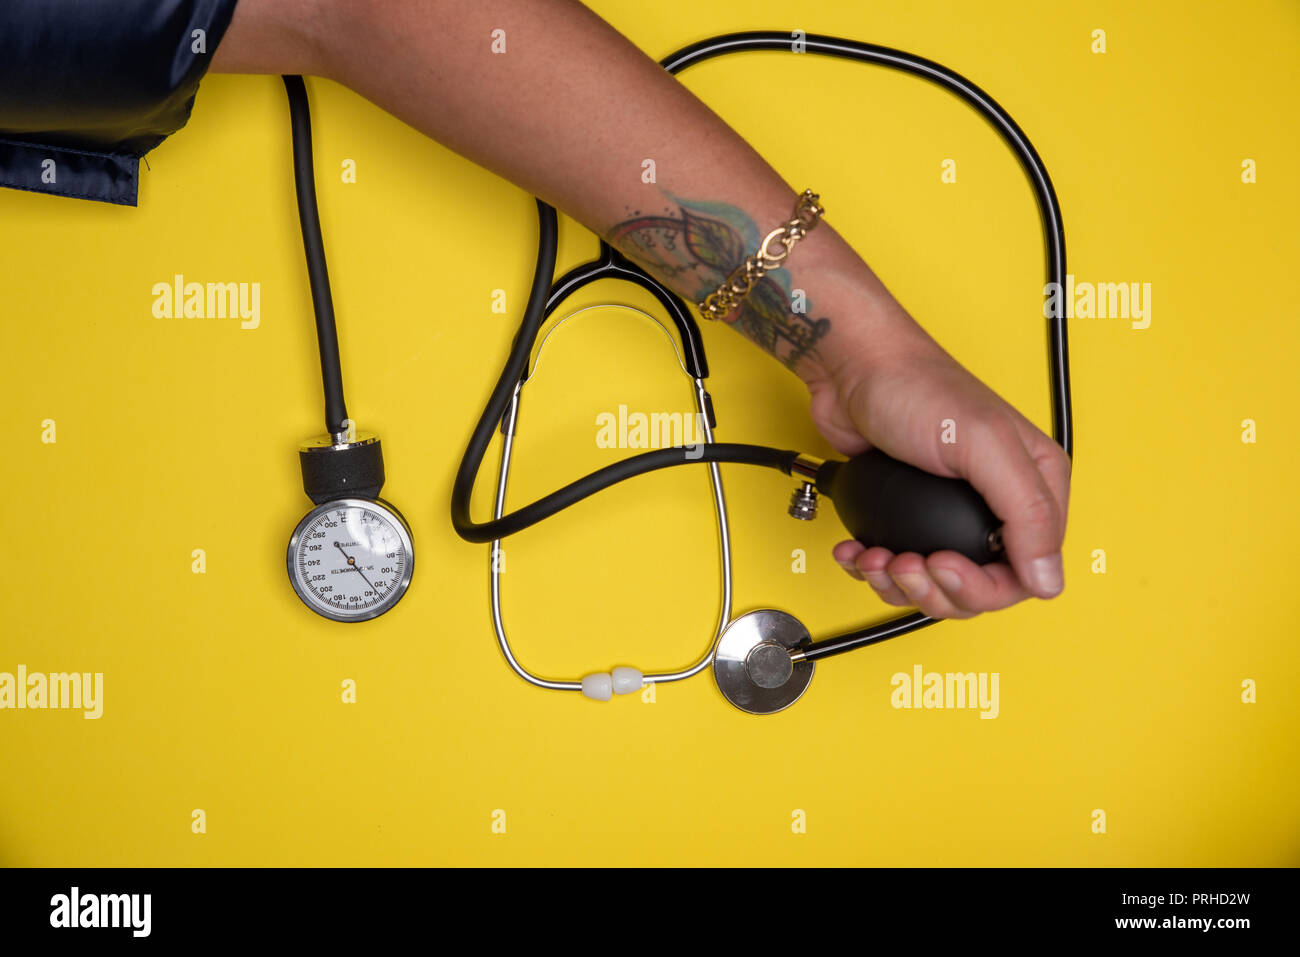 Hand checking blood pressure and stethoscope set aside. Diagnosis instruments for good heathcare - Stock Image